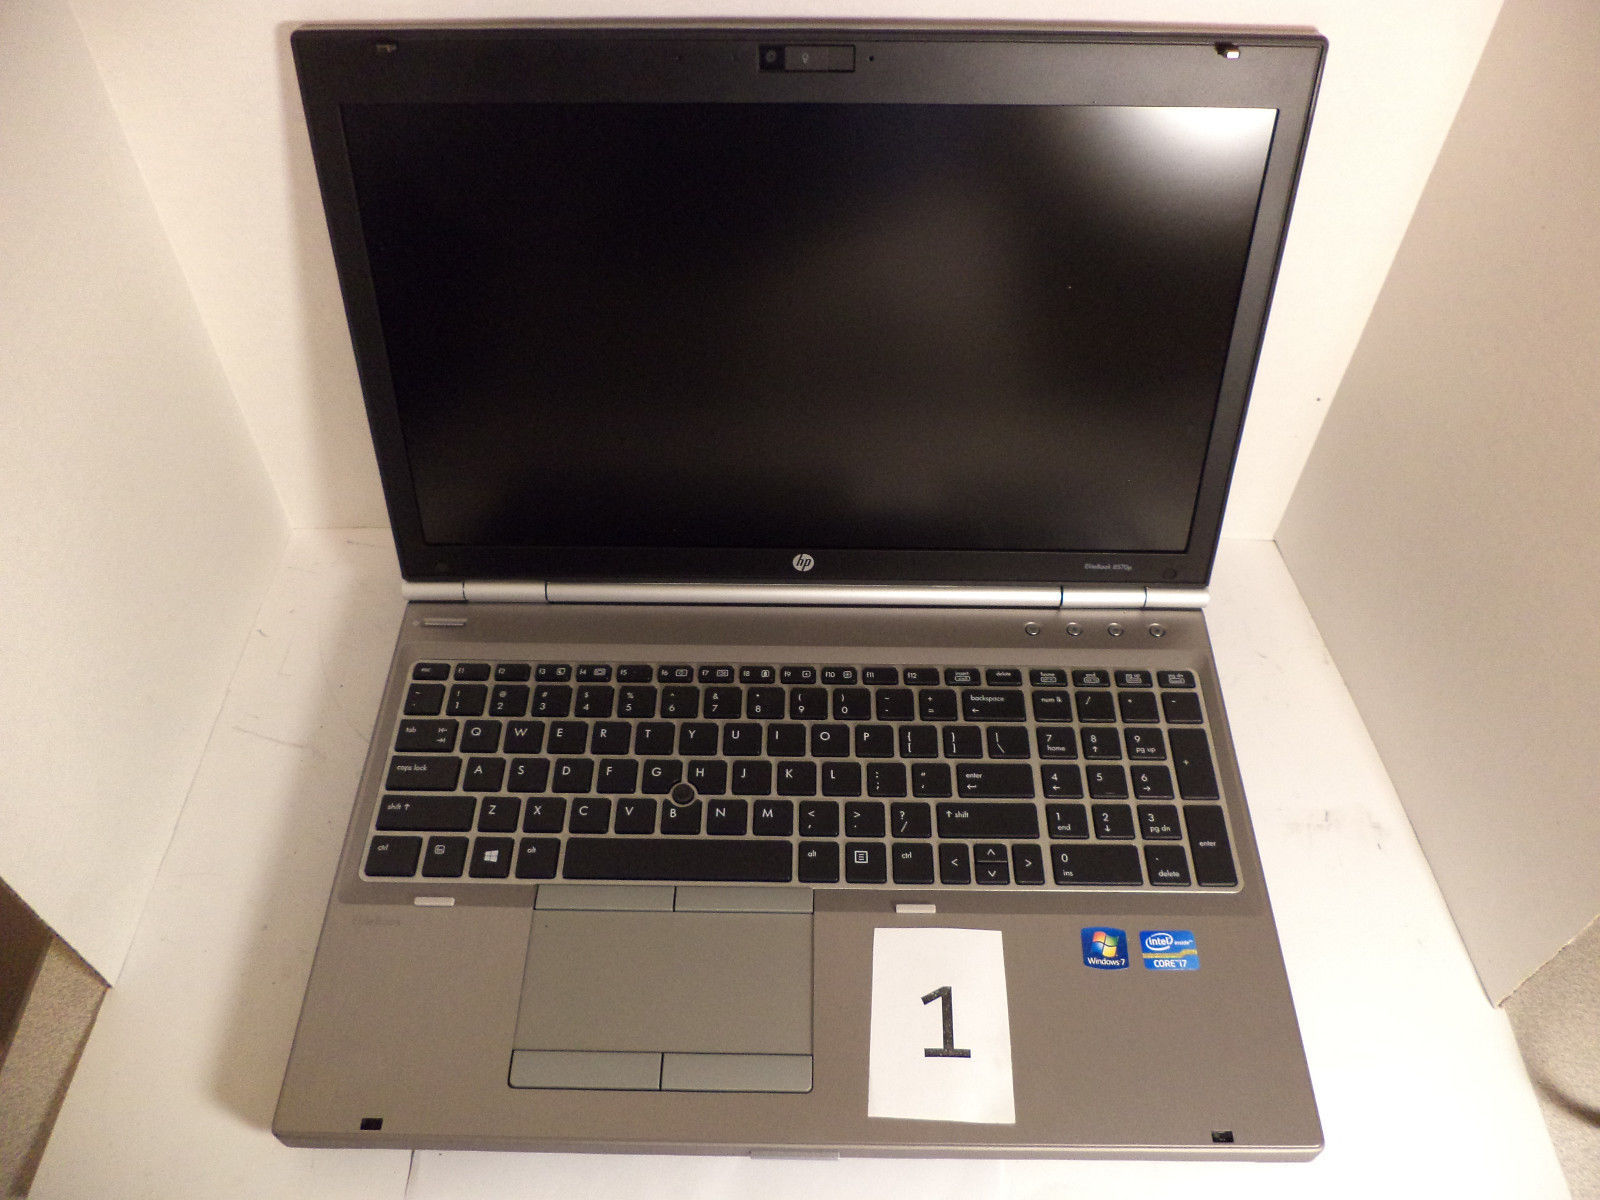 HP Compaq EliteBook 8570p i7 CPU Laptop 2 GB RAM No Hard Drive No OS Lot 3 AS-IS